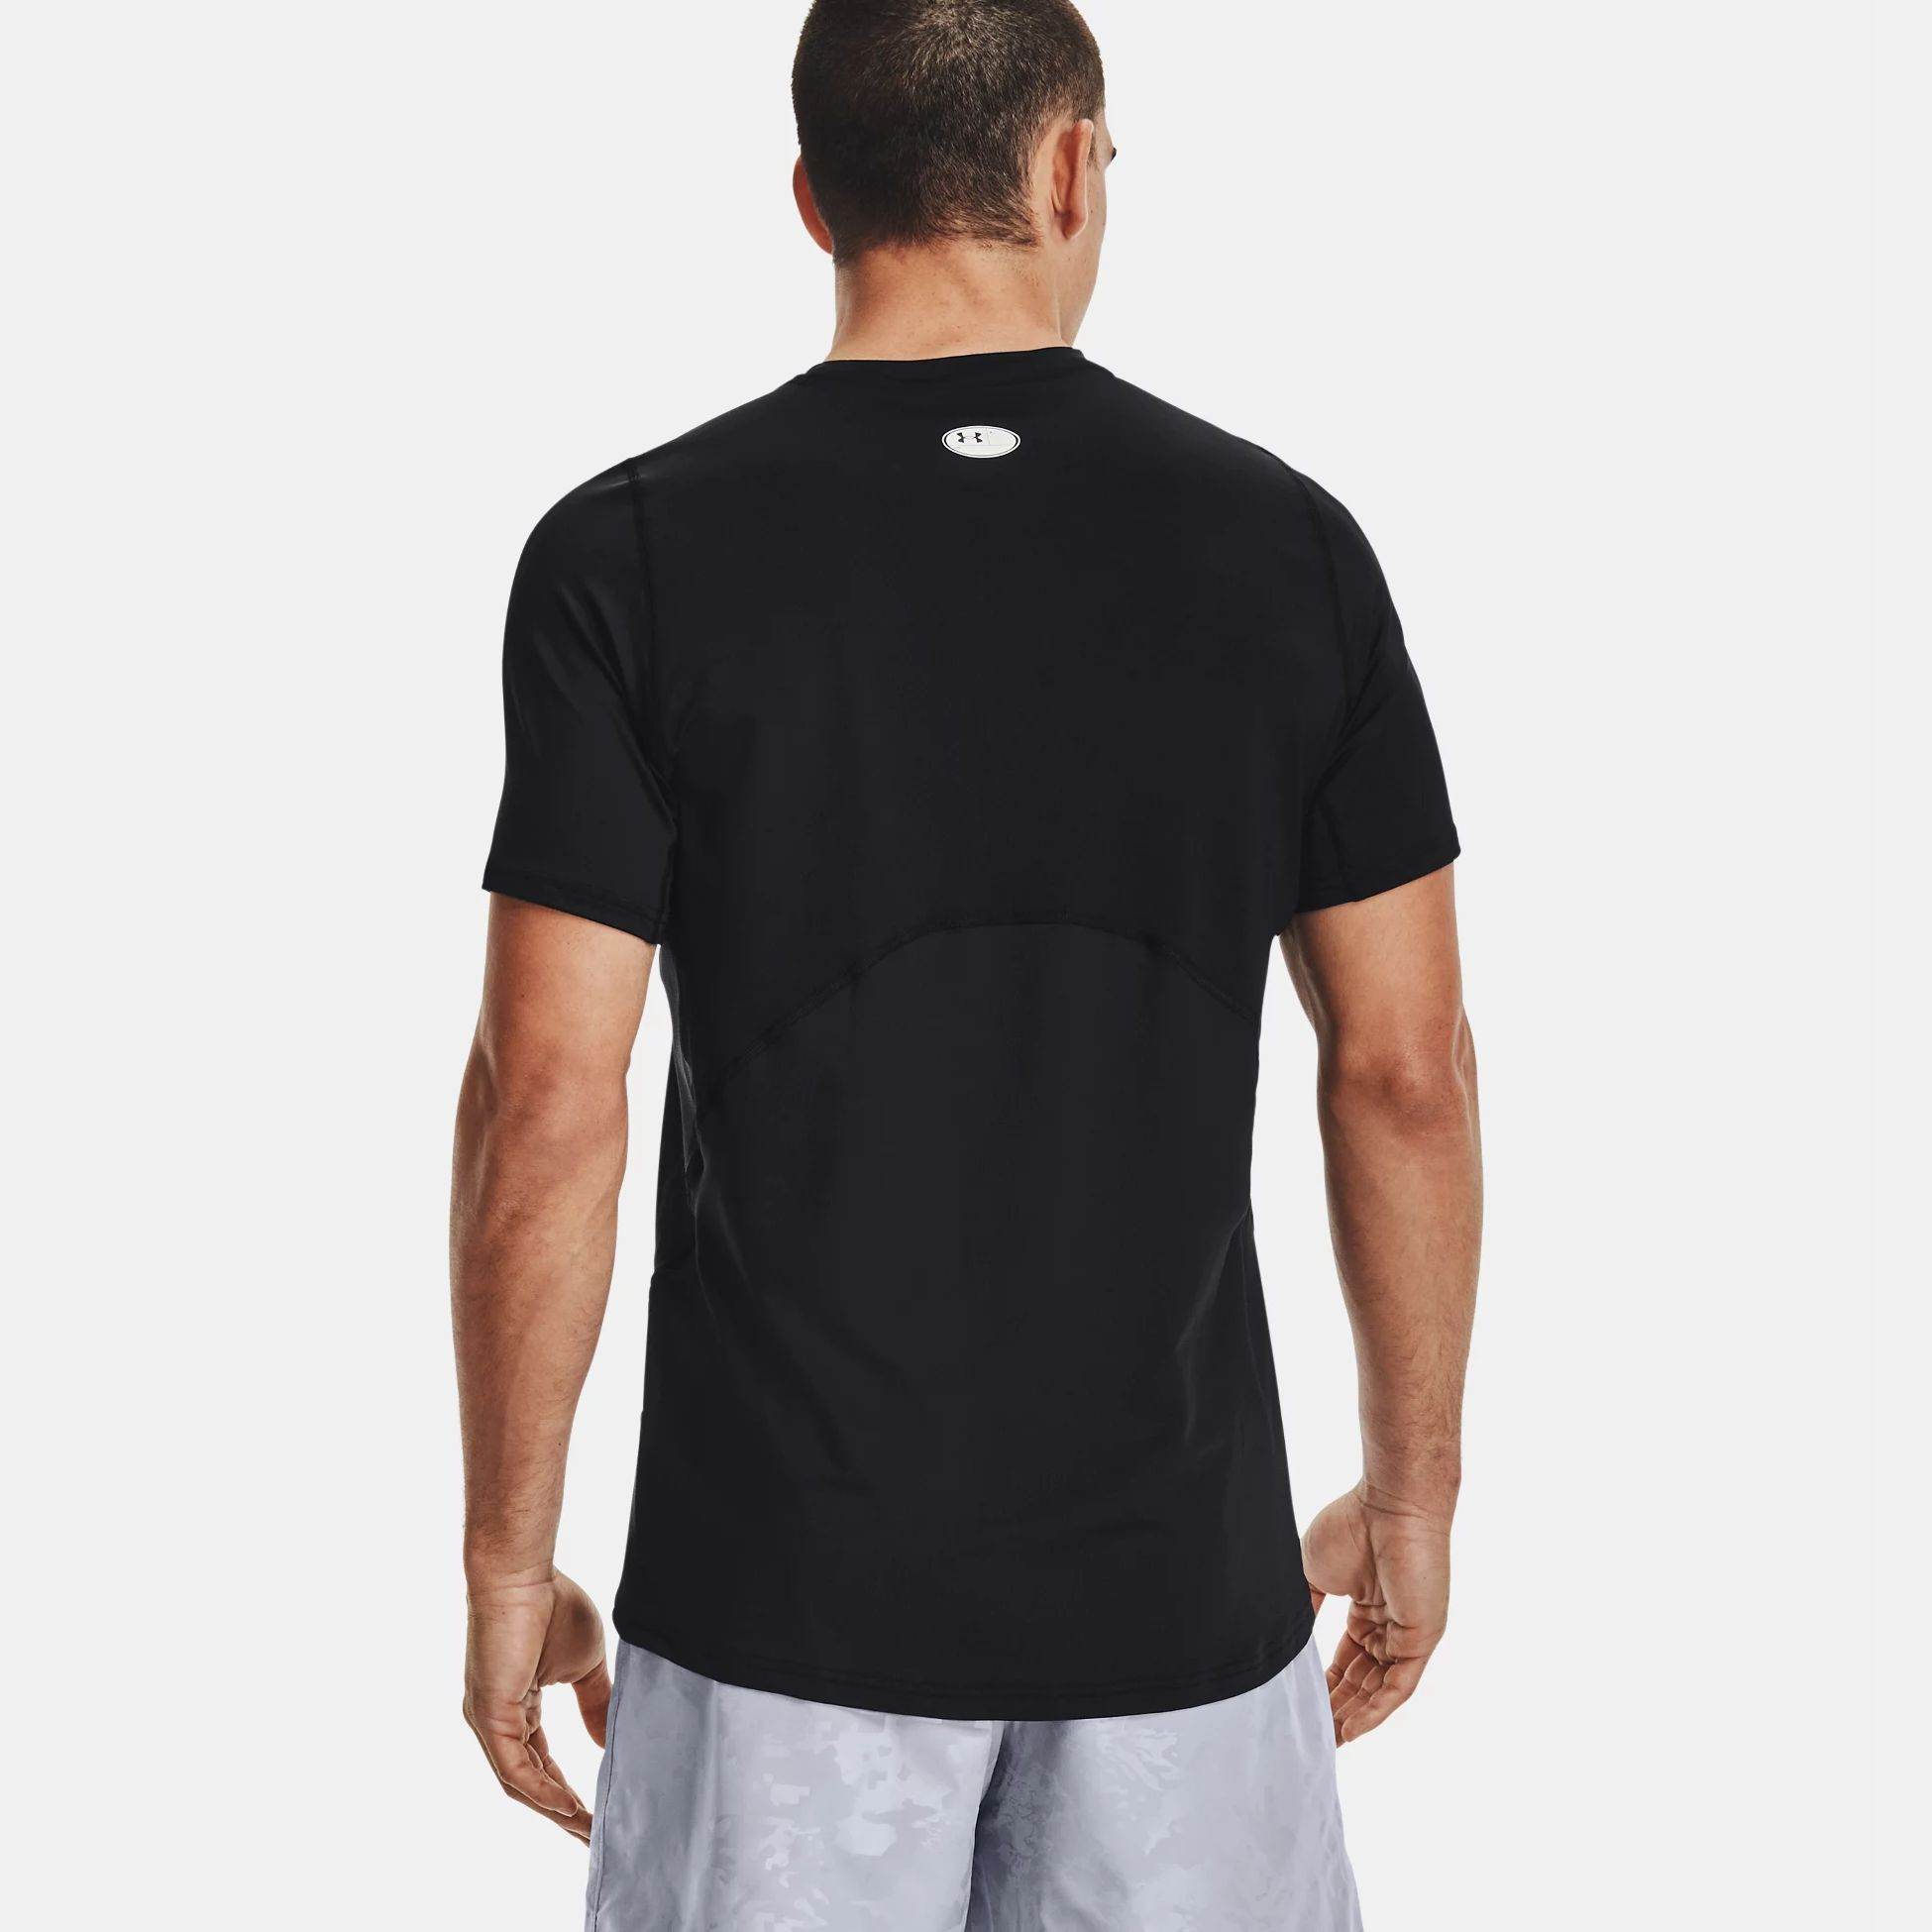 Clothing -  under armour HeatGear Armour Fitted T-Shirt 1683